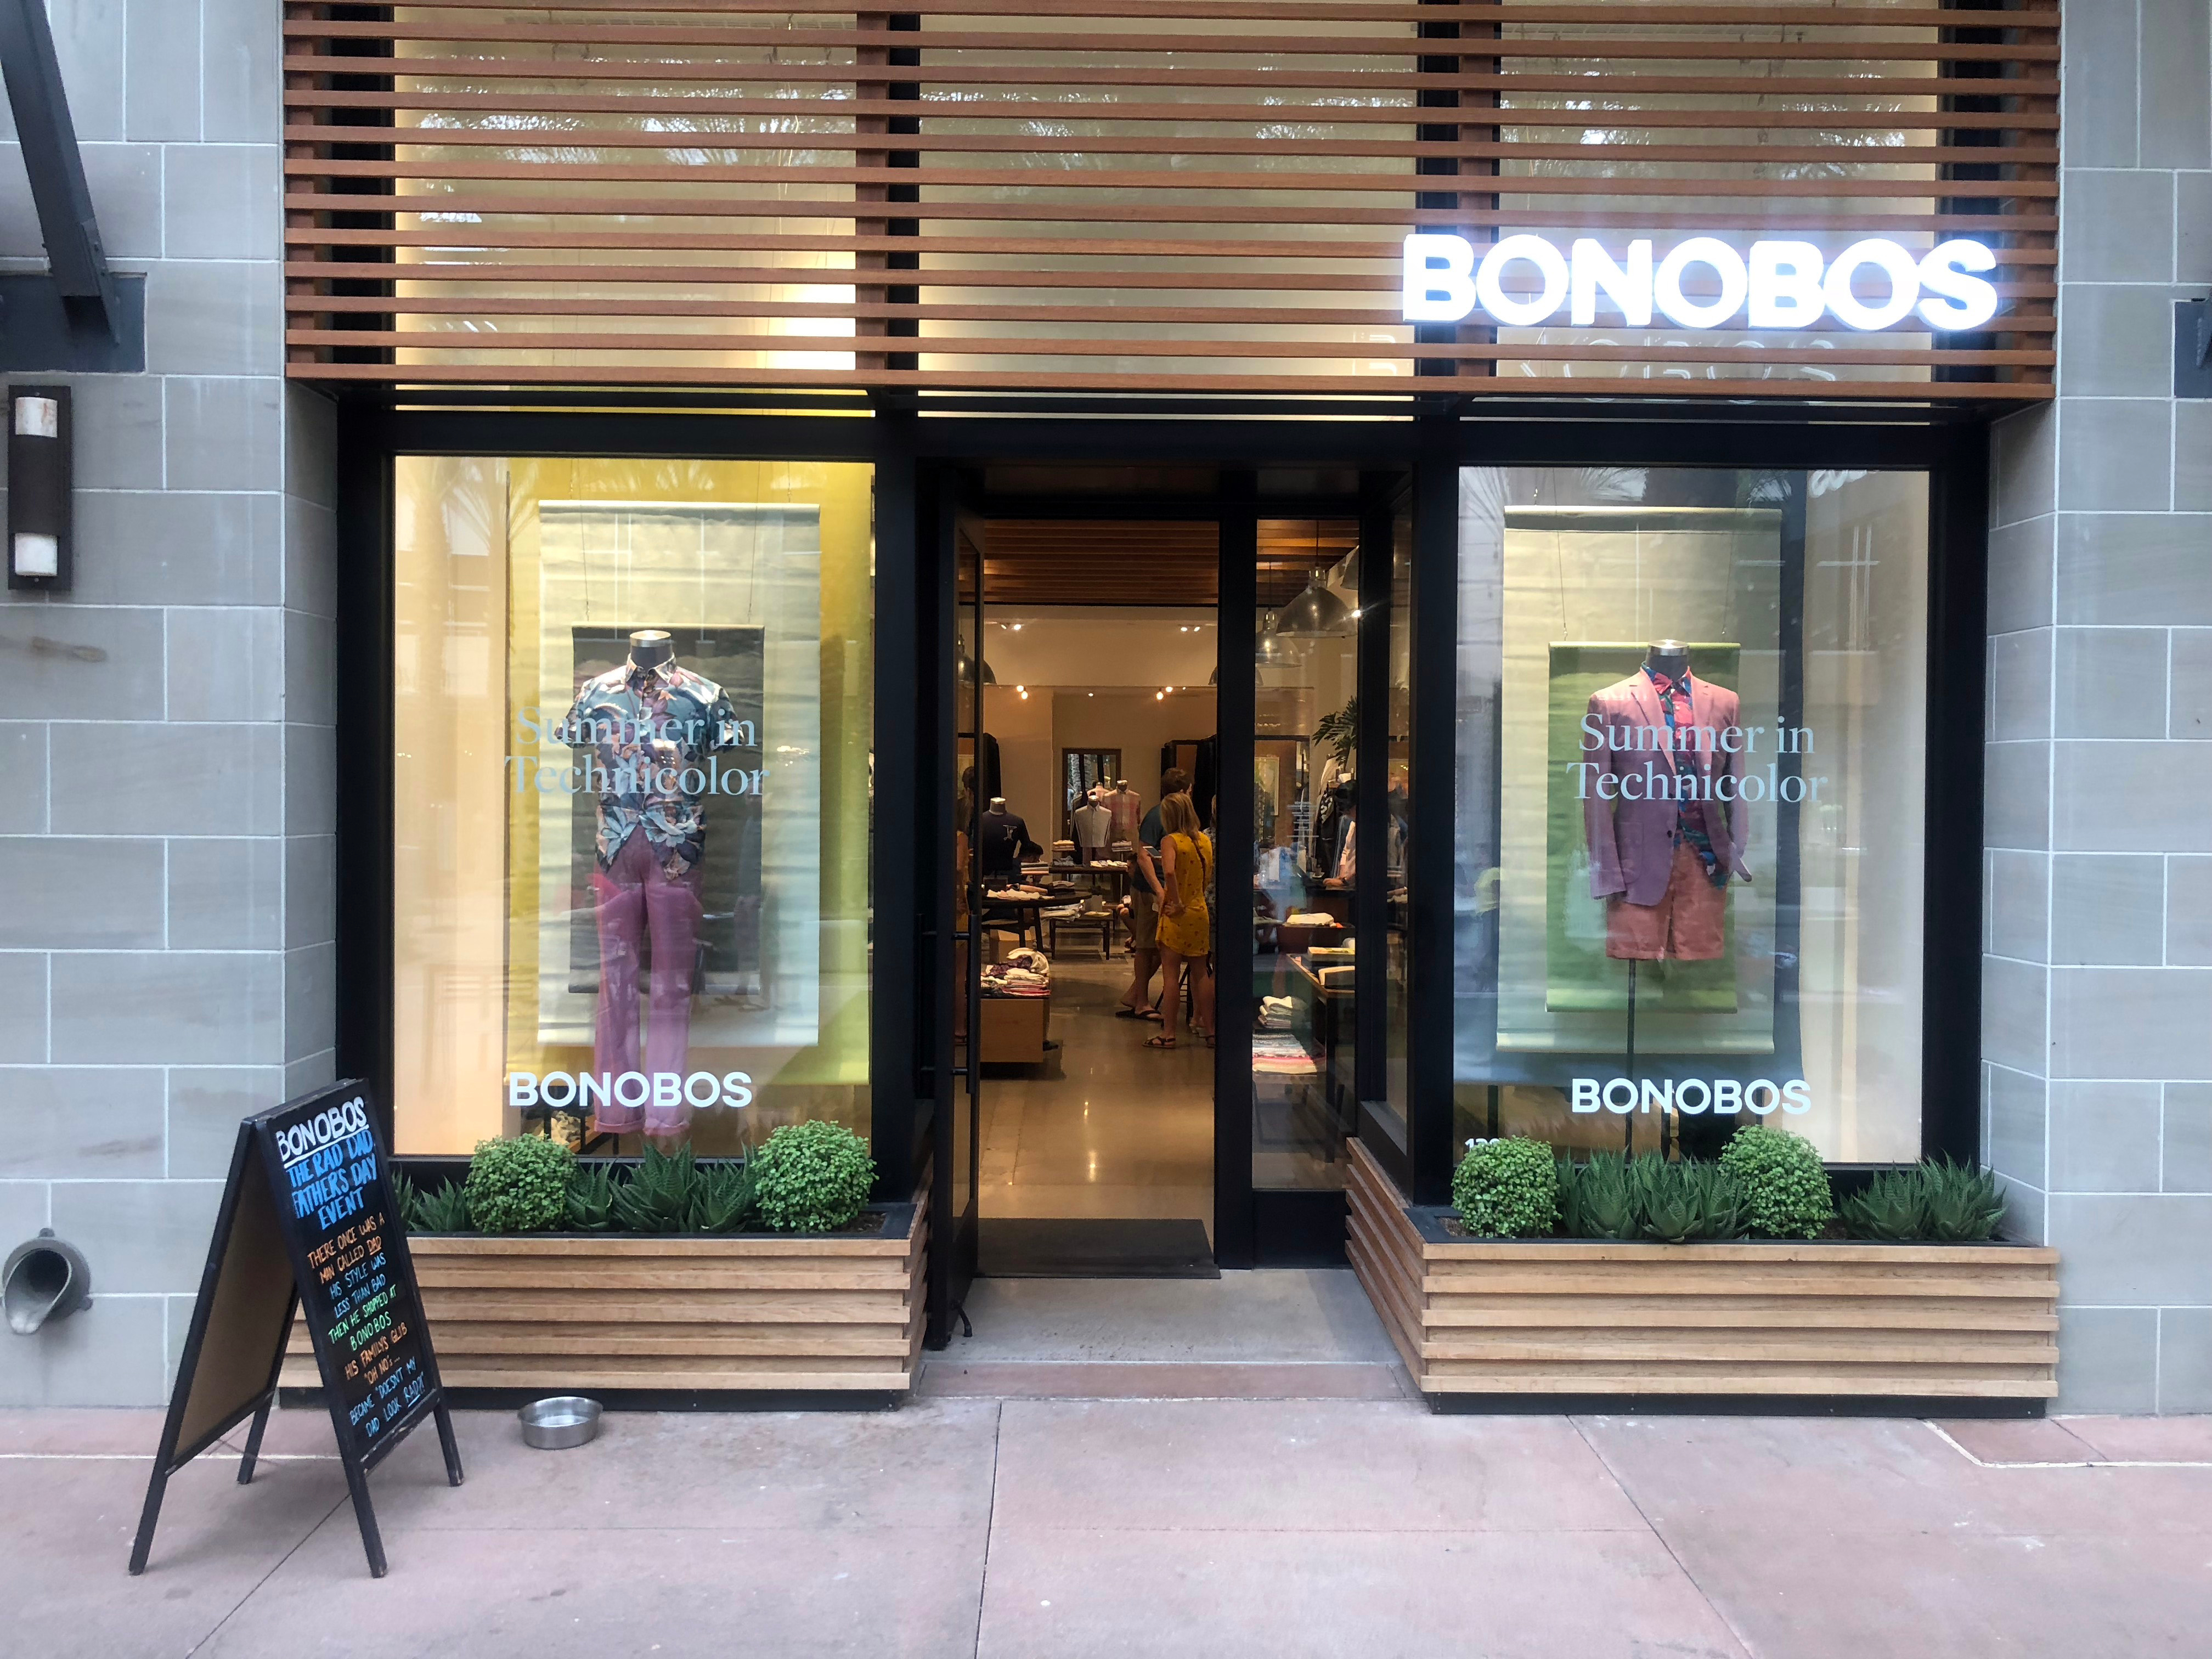 Bonobos expands business model with new try-before-you-buy program